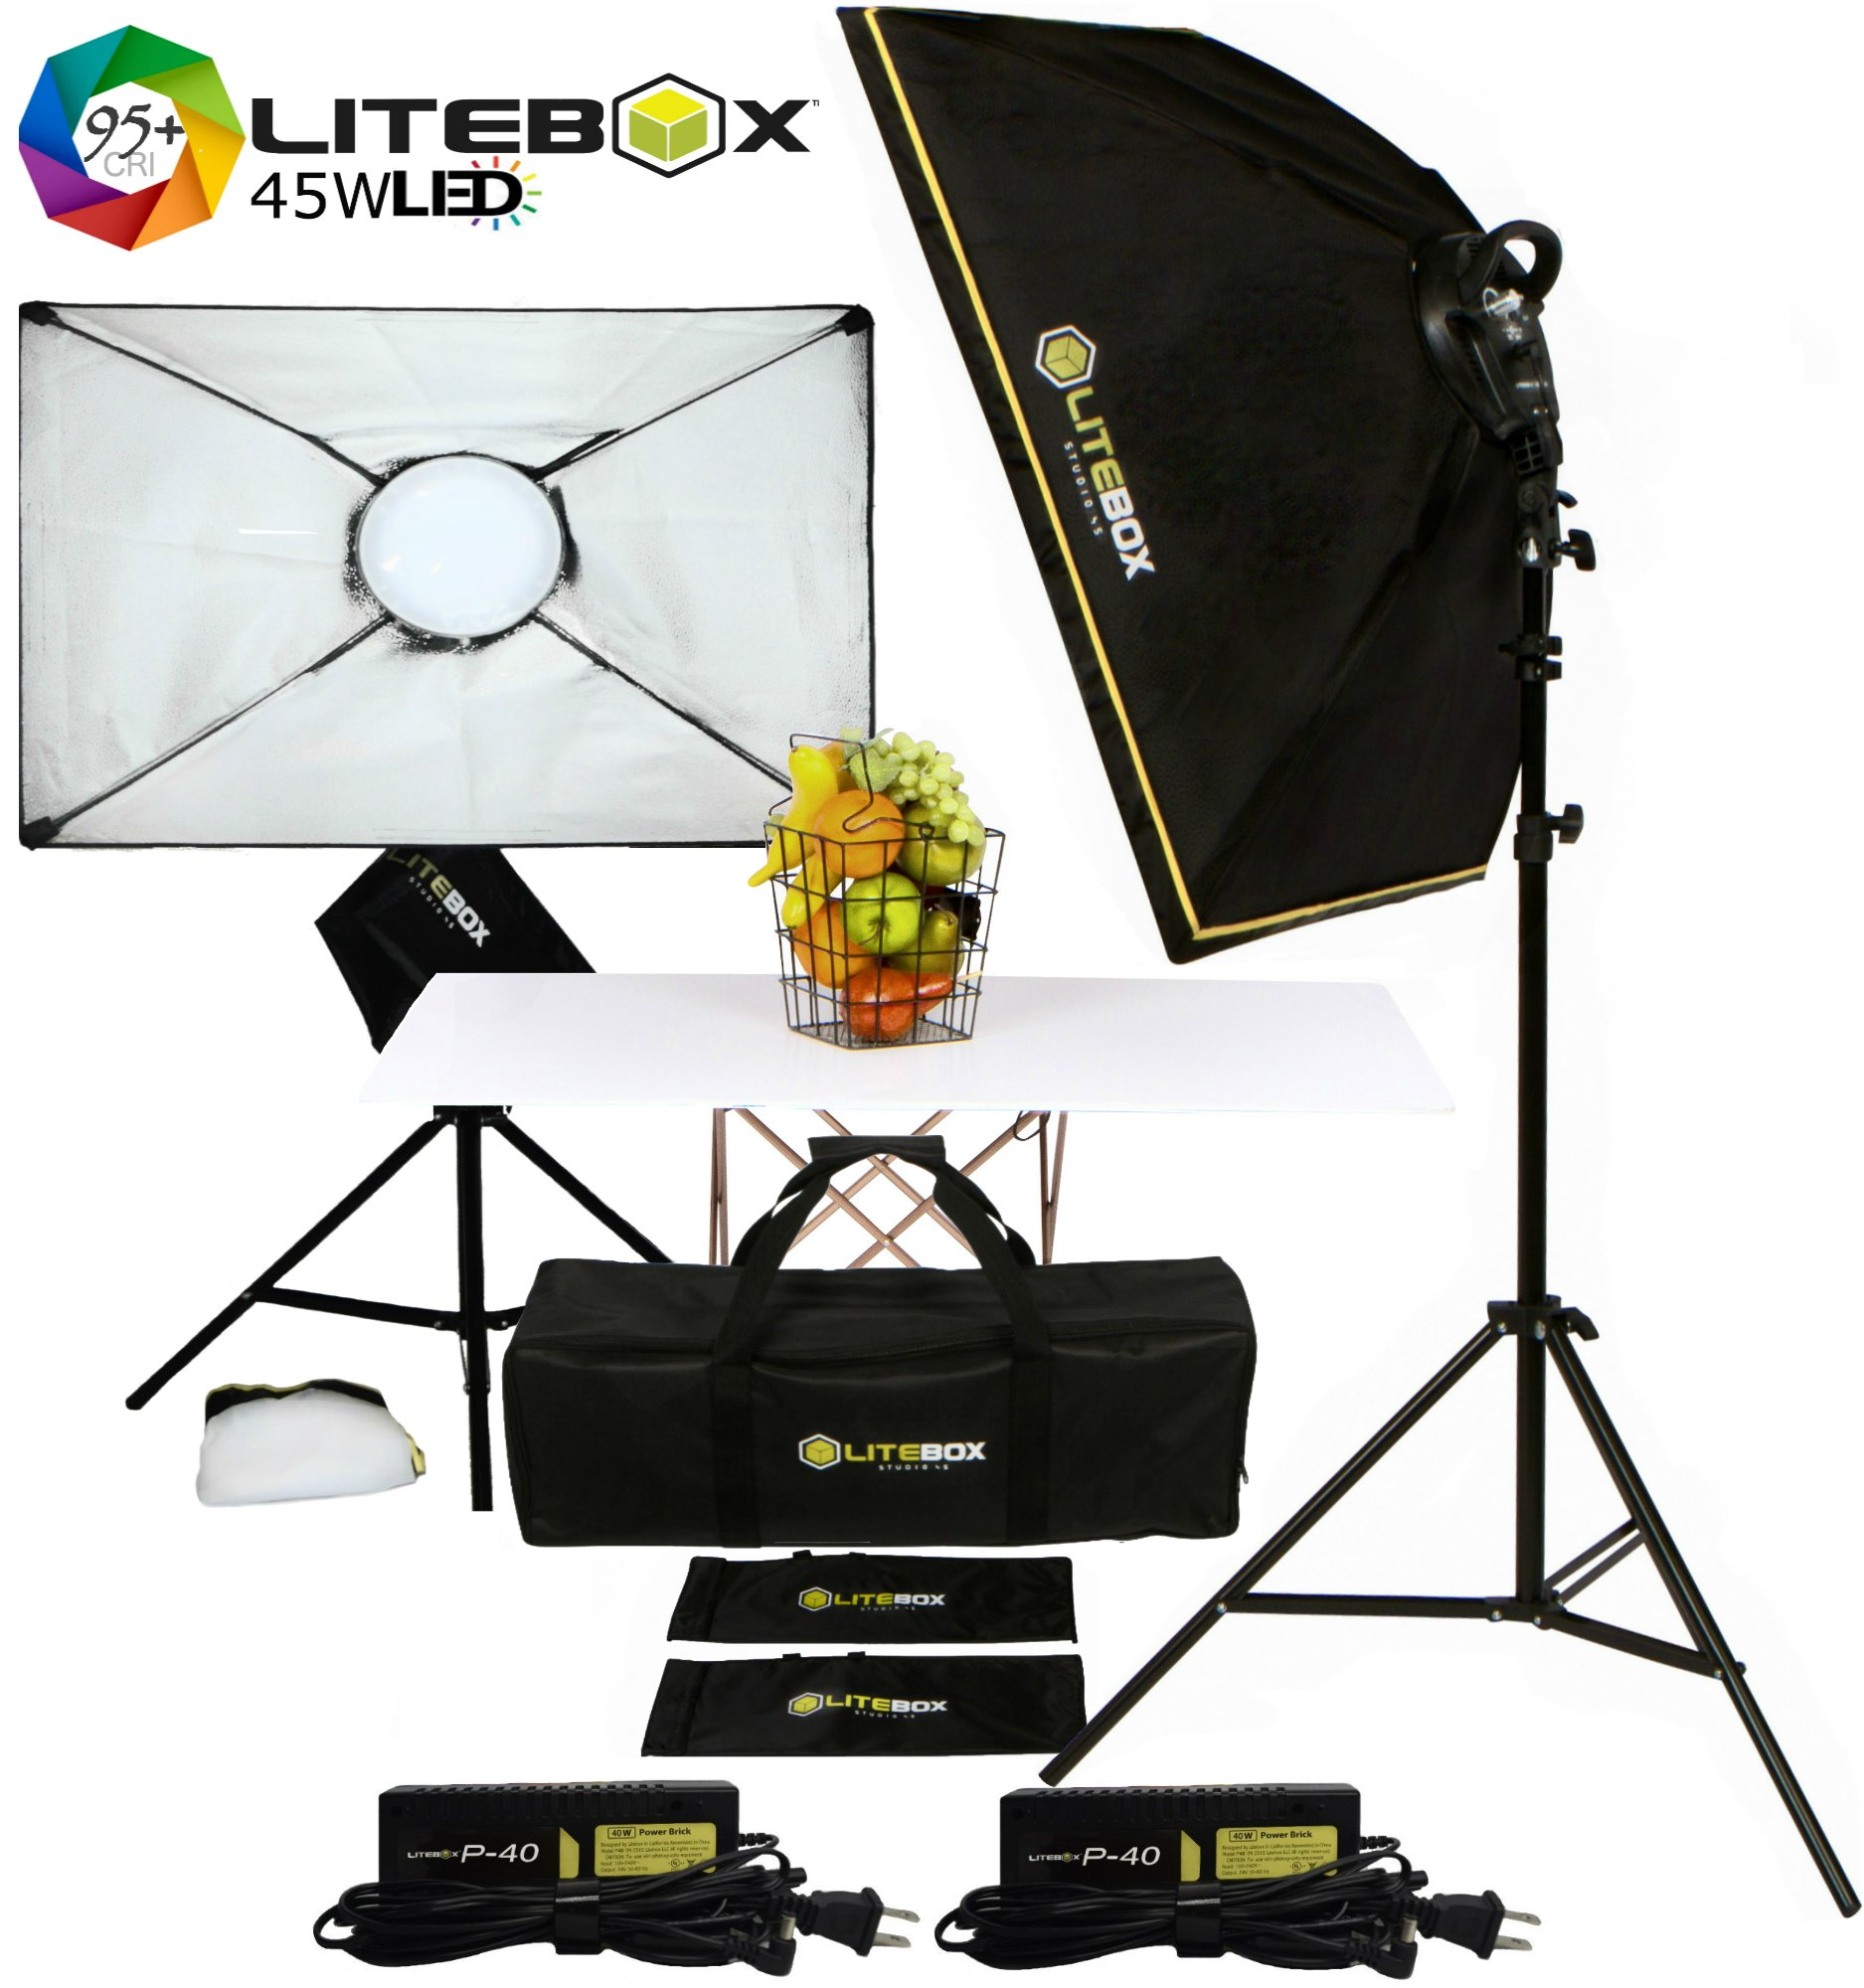 LITEBOX LED Softbox Lighting Kit for Professional Photography & Video - (Set of 2)